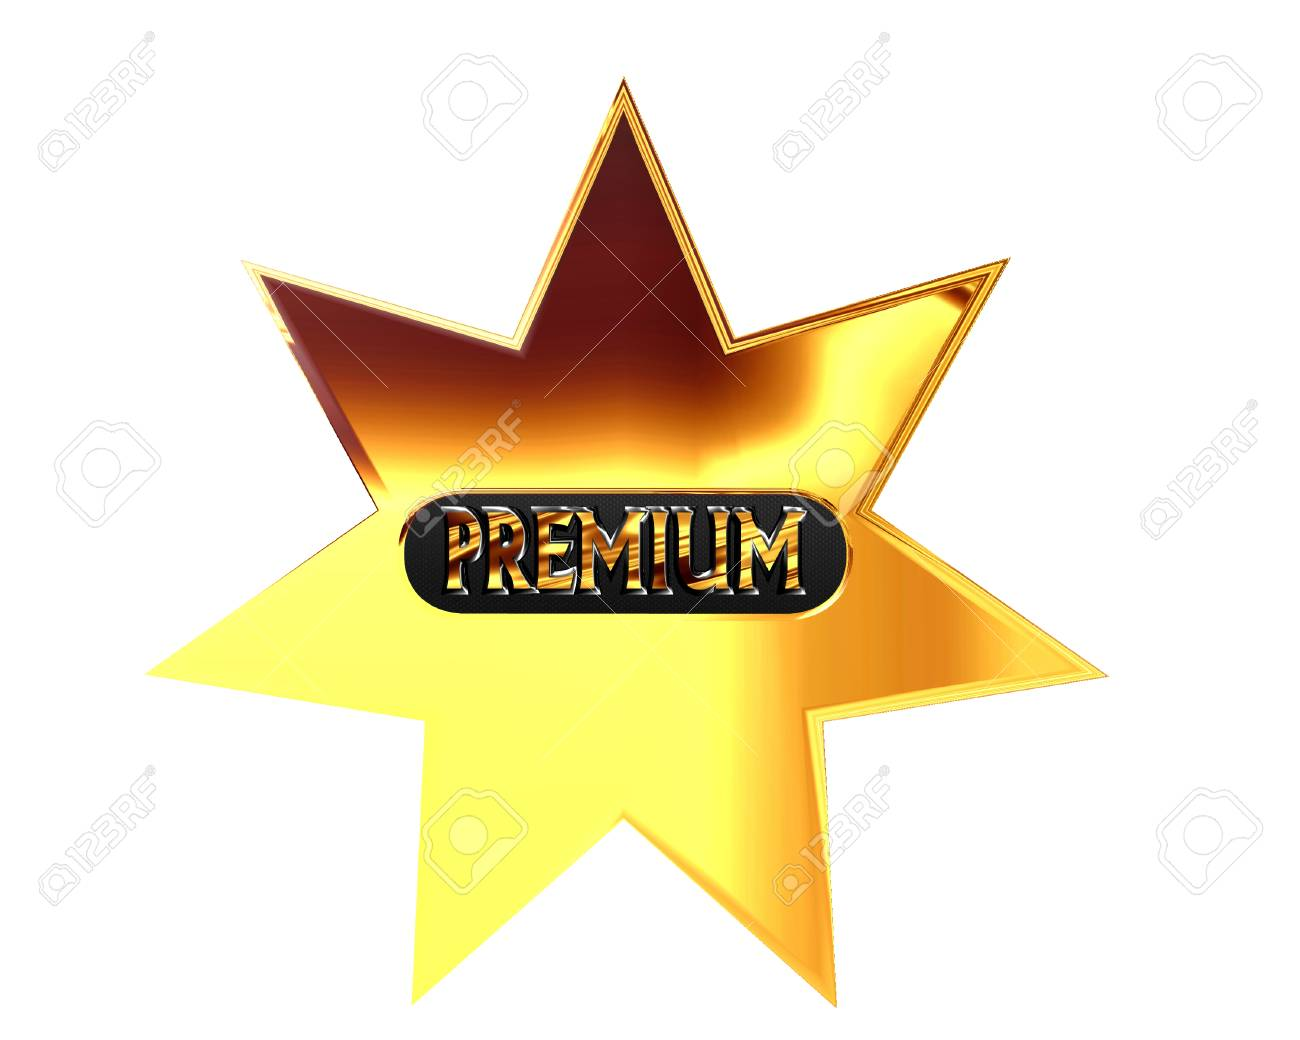 3d illustration gold star with premium text on a white background